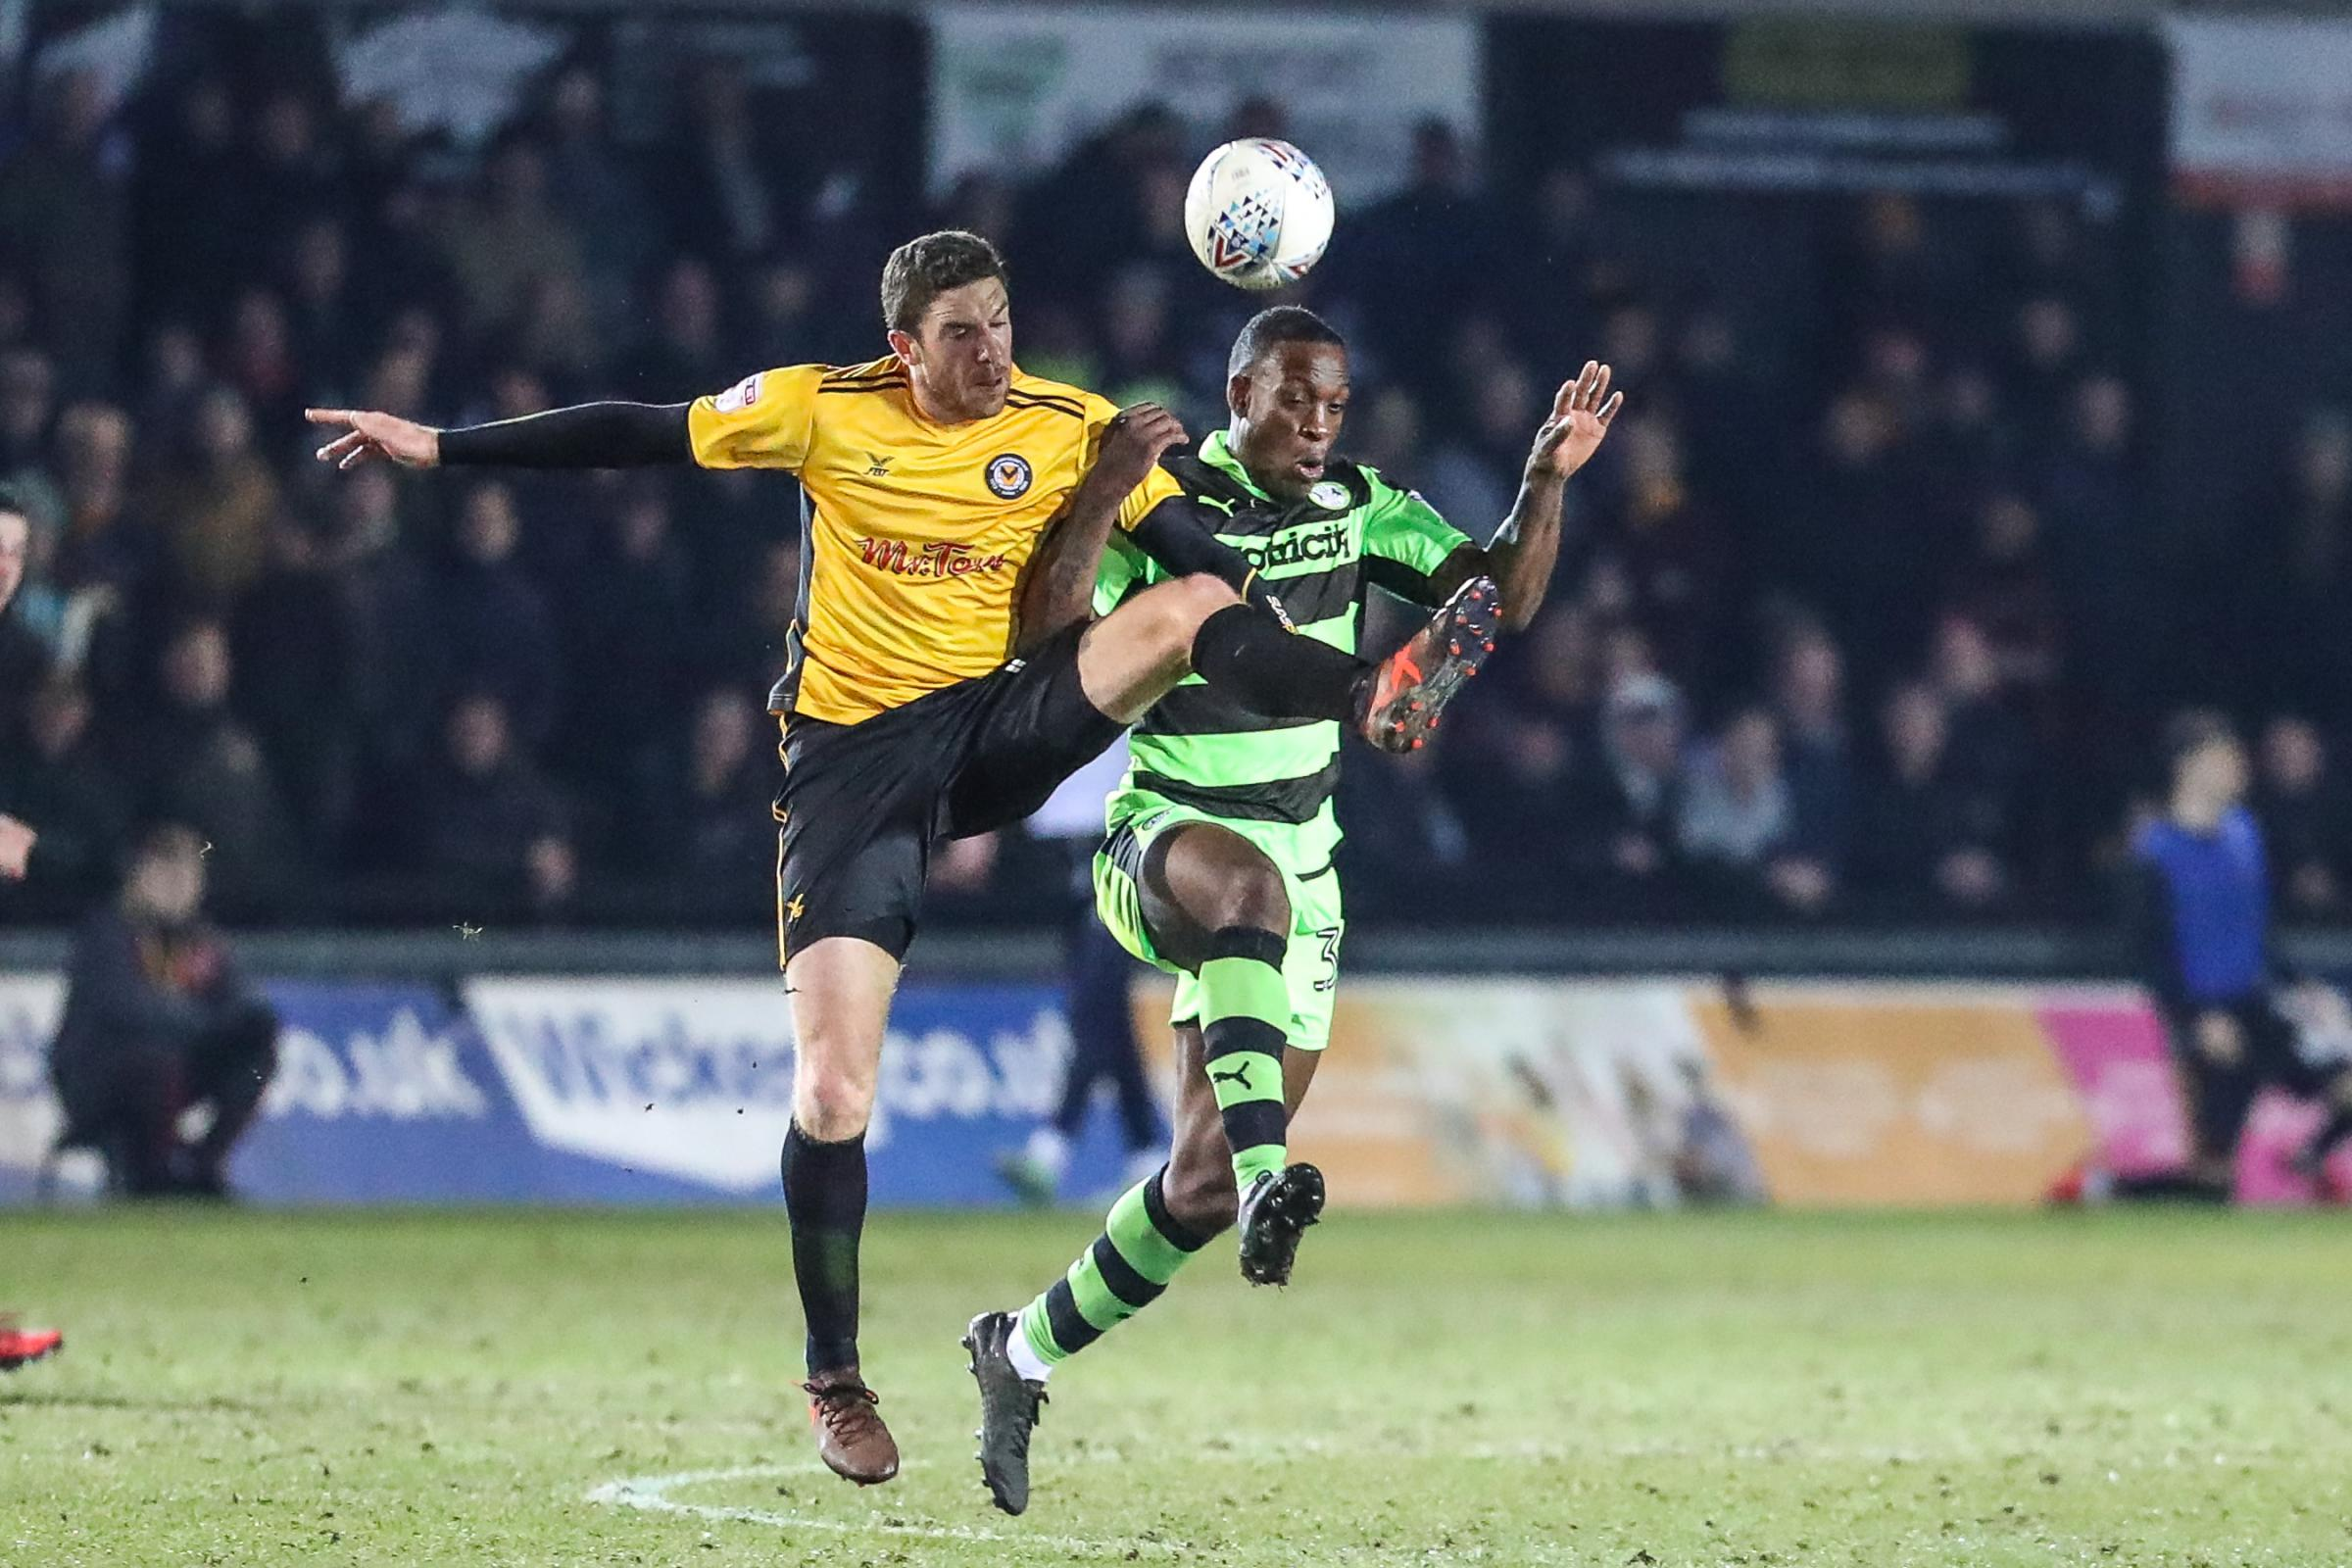 VIDEO: Relive the thrilling 3-3 draw between Forest Green and Newport County